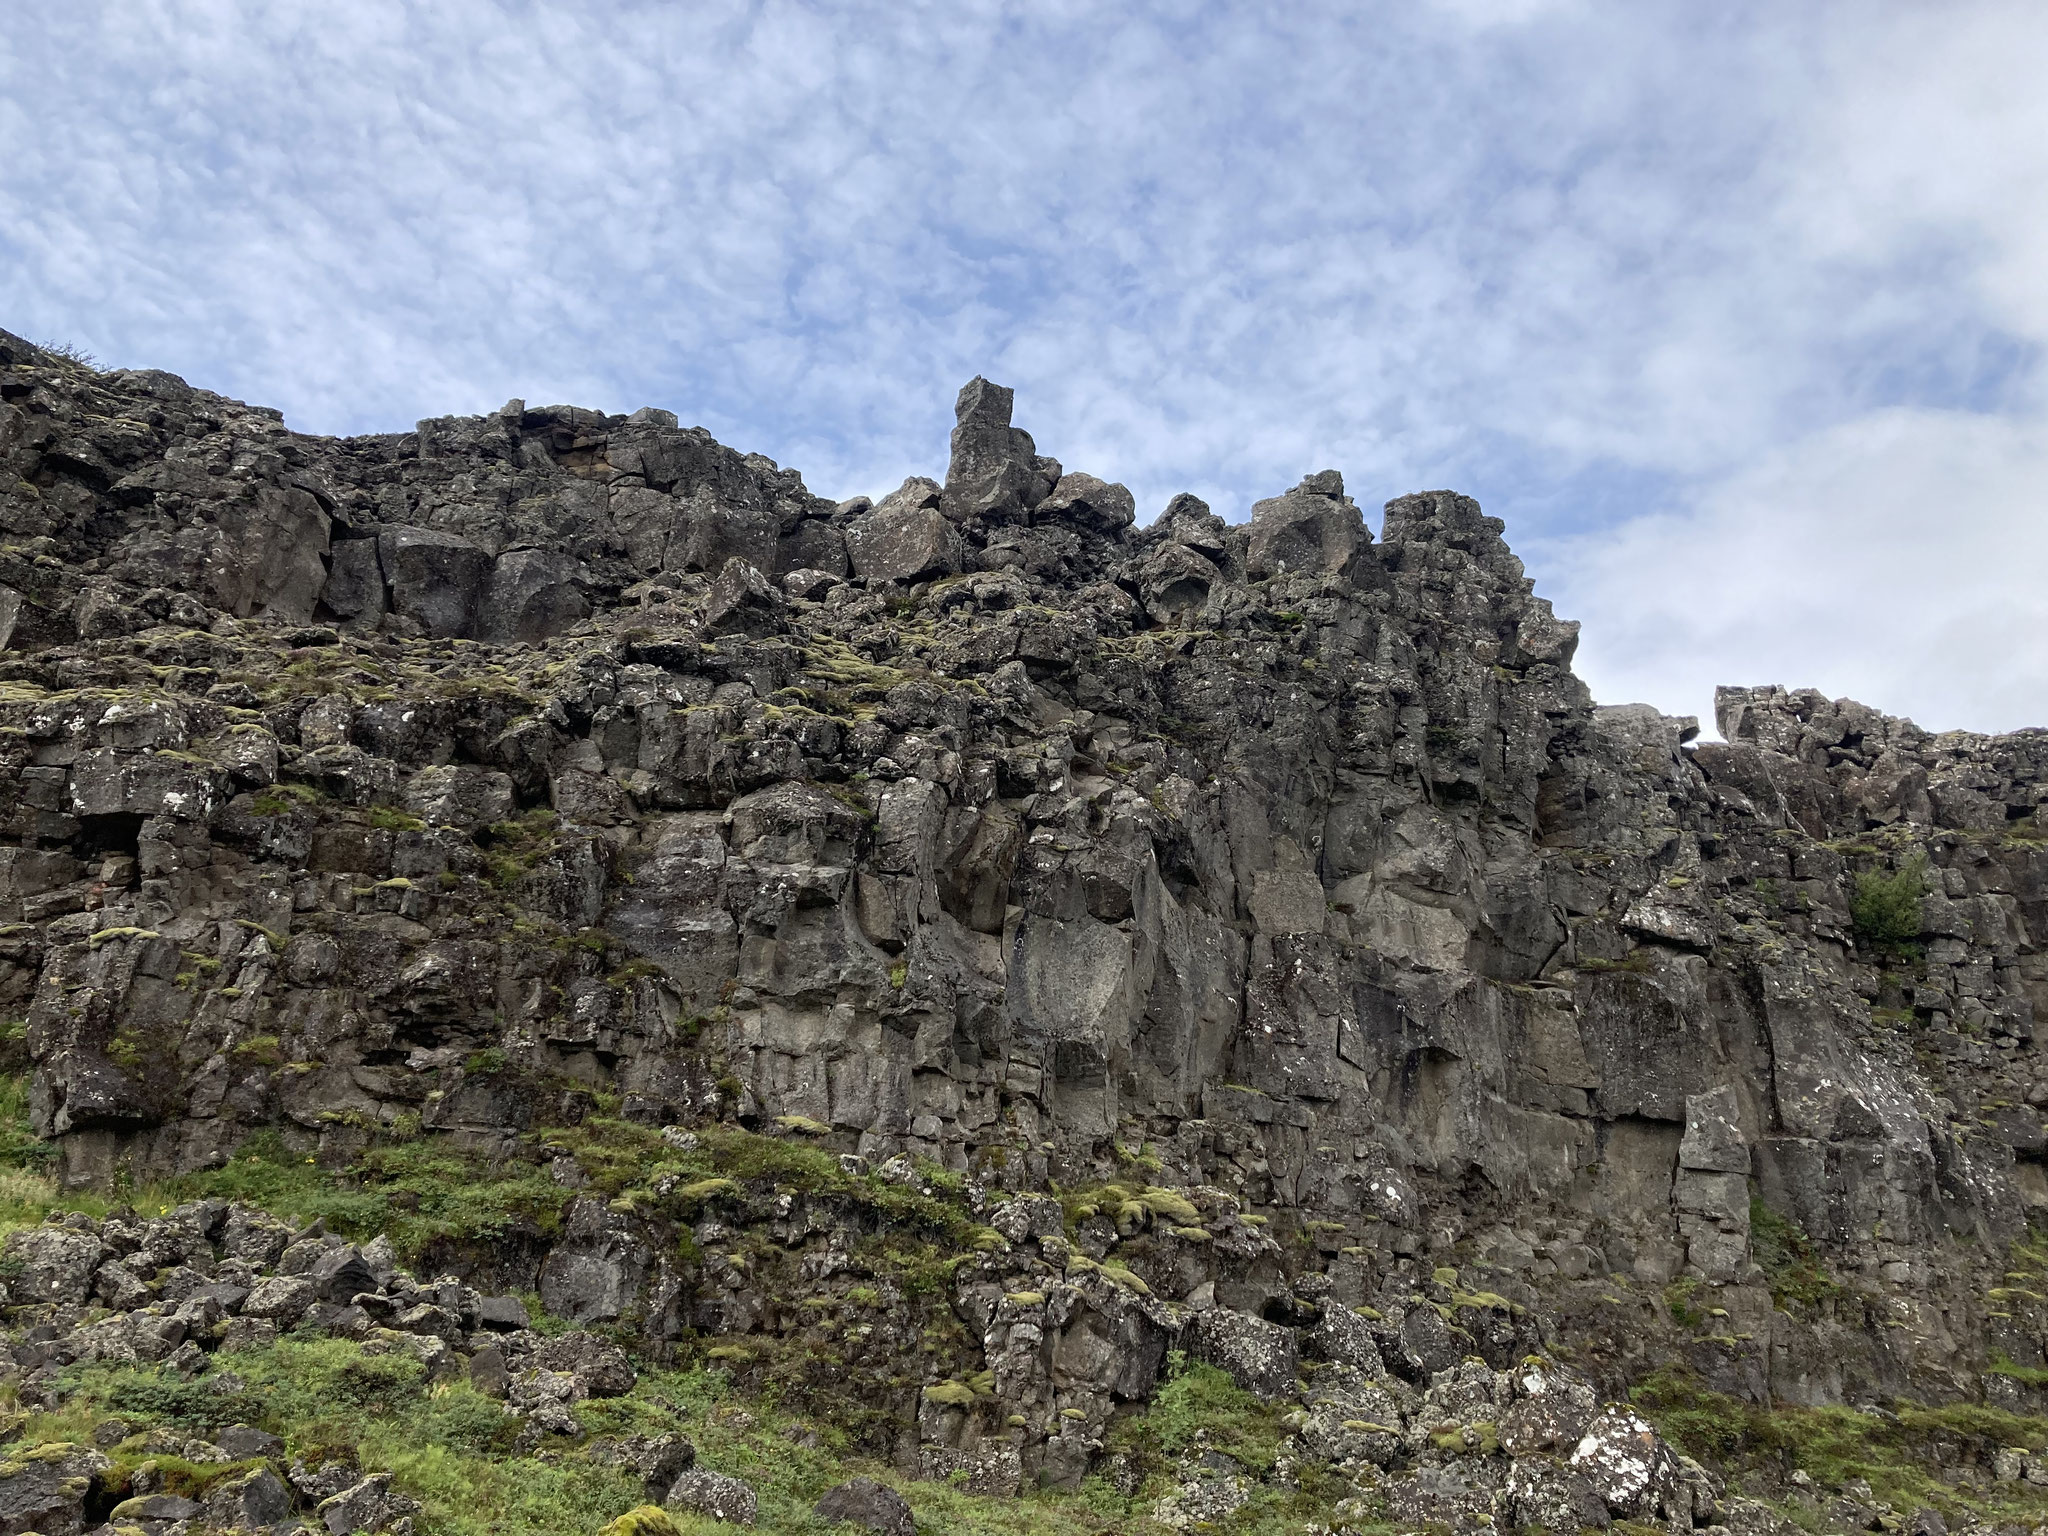 The towering presence of Almannagja. It forms one side of a Rift Valley within the Mid-Atlantic Ridge between between North America and Eurasia. This was the spectacular back drop of the Althing Assembly.